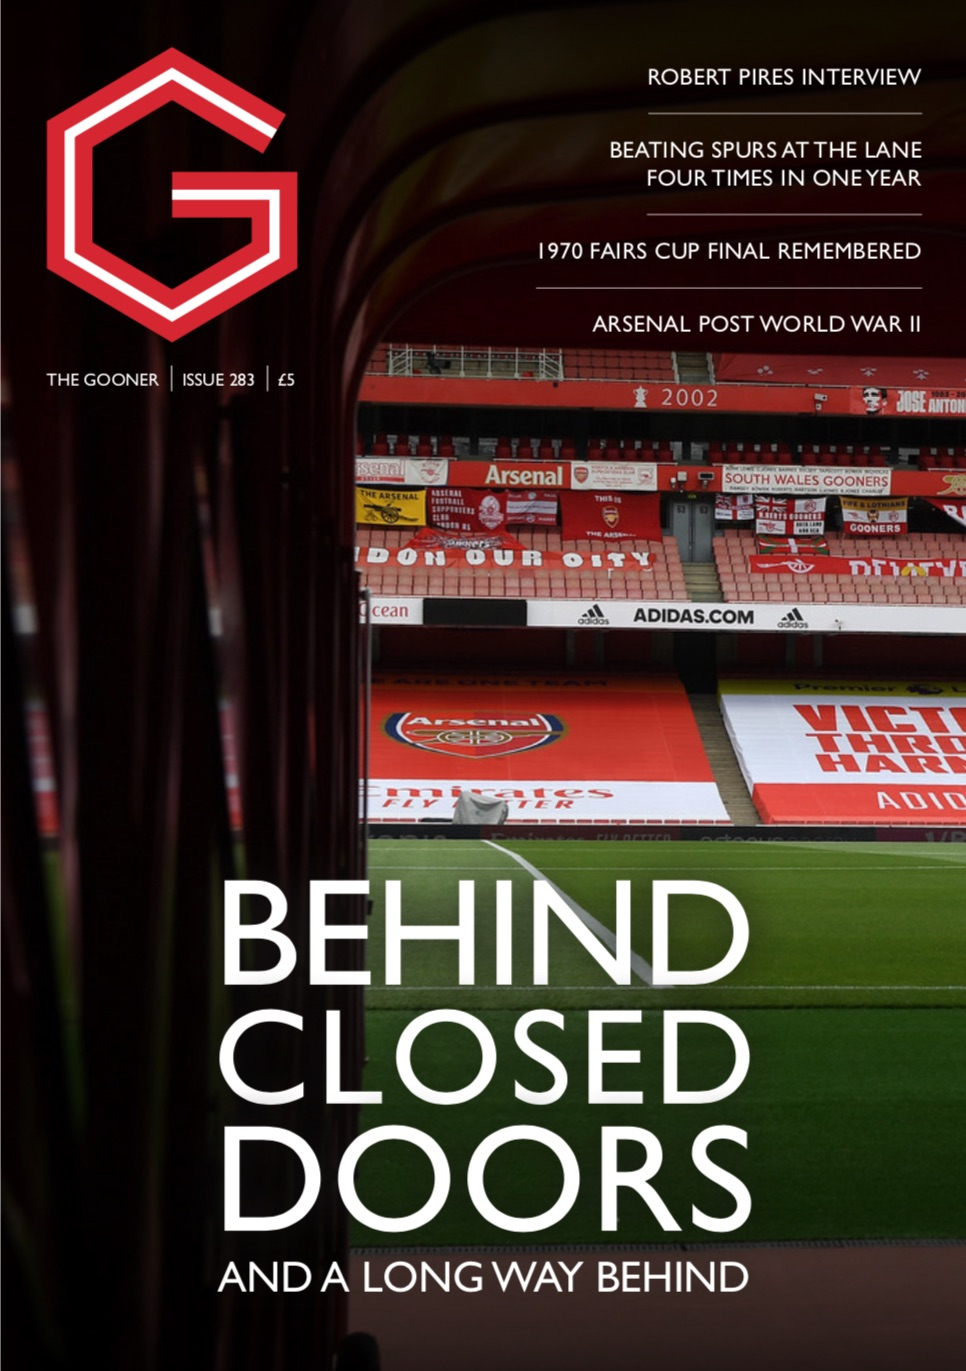 Behind Closed Doors Edition - Gooner 283 (Overseas)